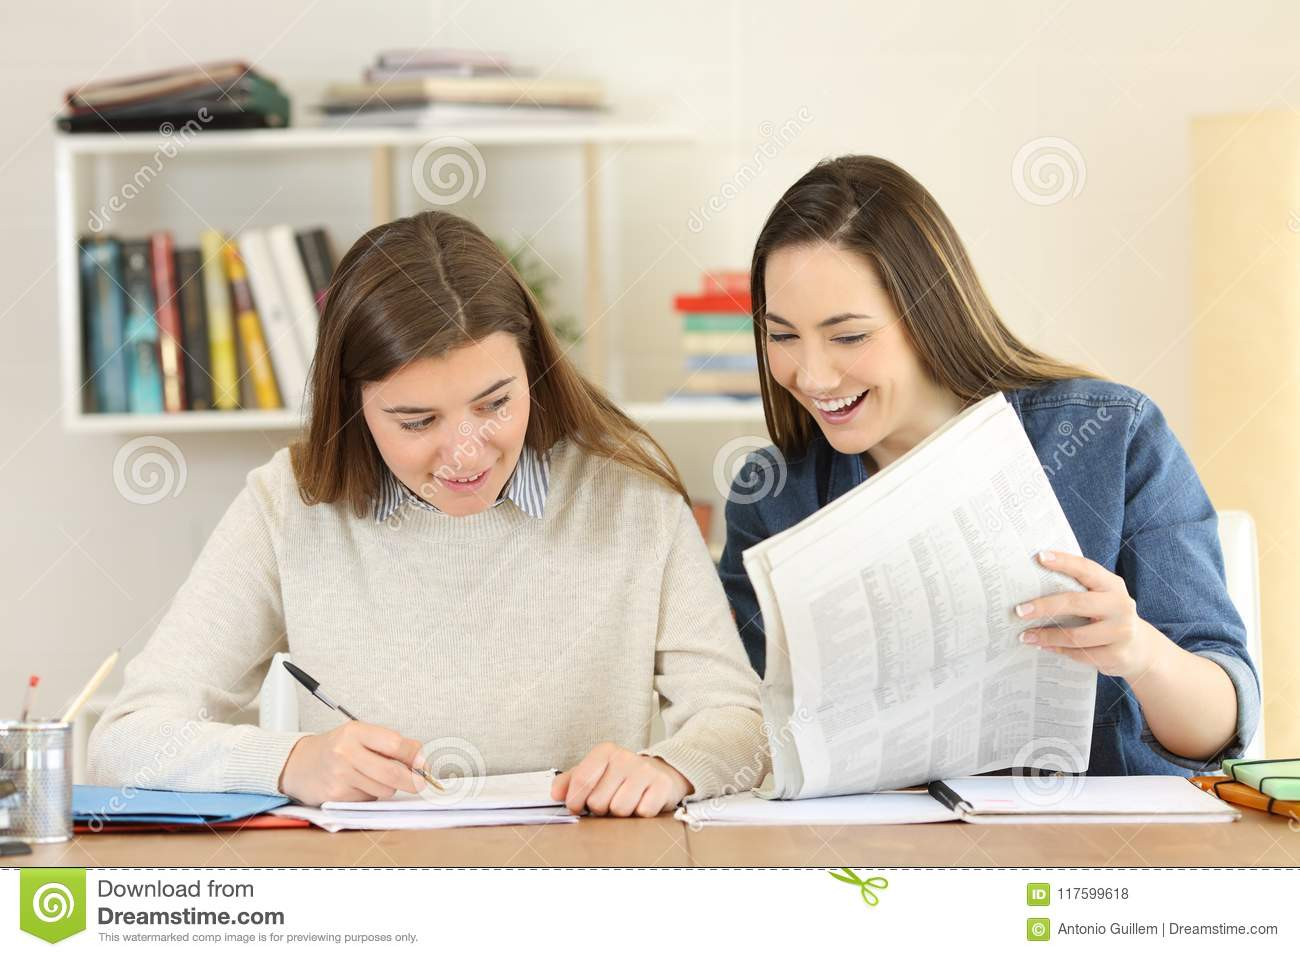 two students comparing newspaper news stock photo - image of